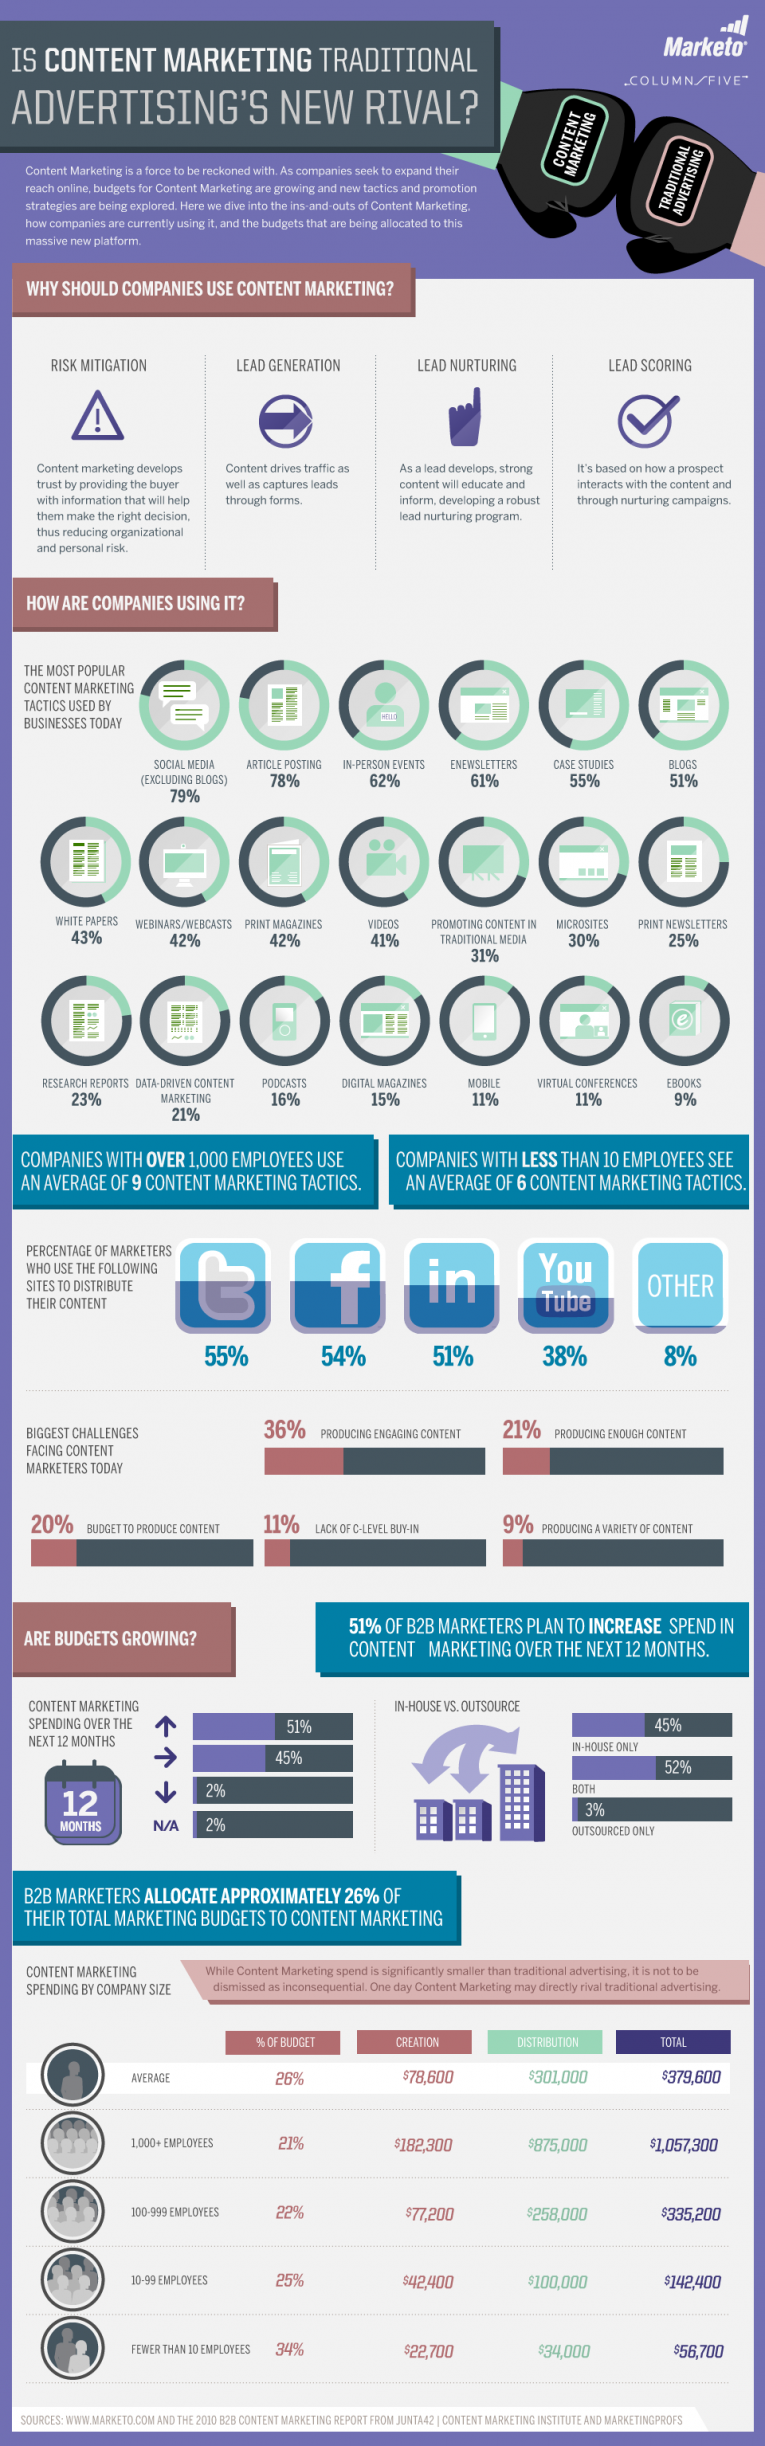 content-marketing-vs-traditional-marketing-infographic/content-marketing-infographic-by-marketo